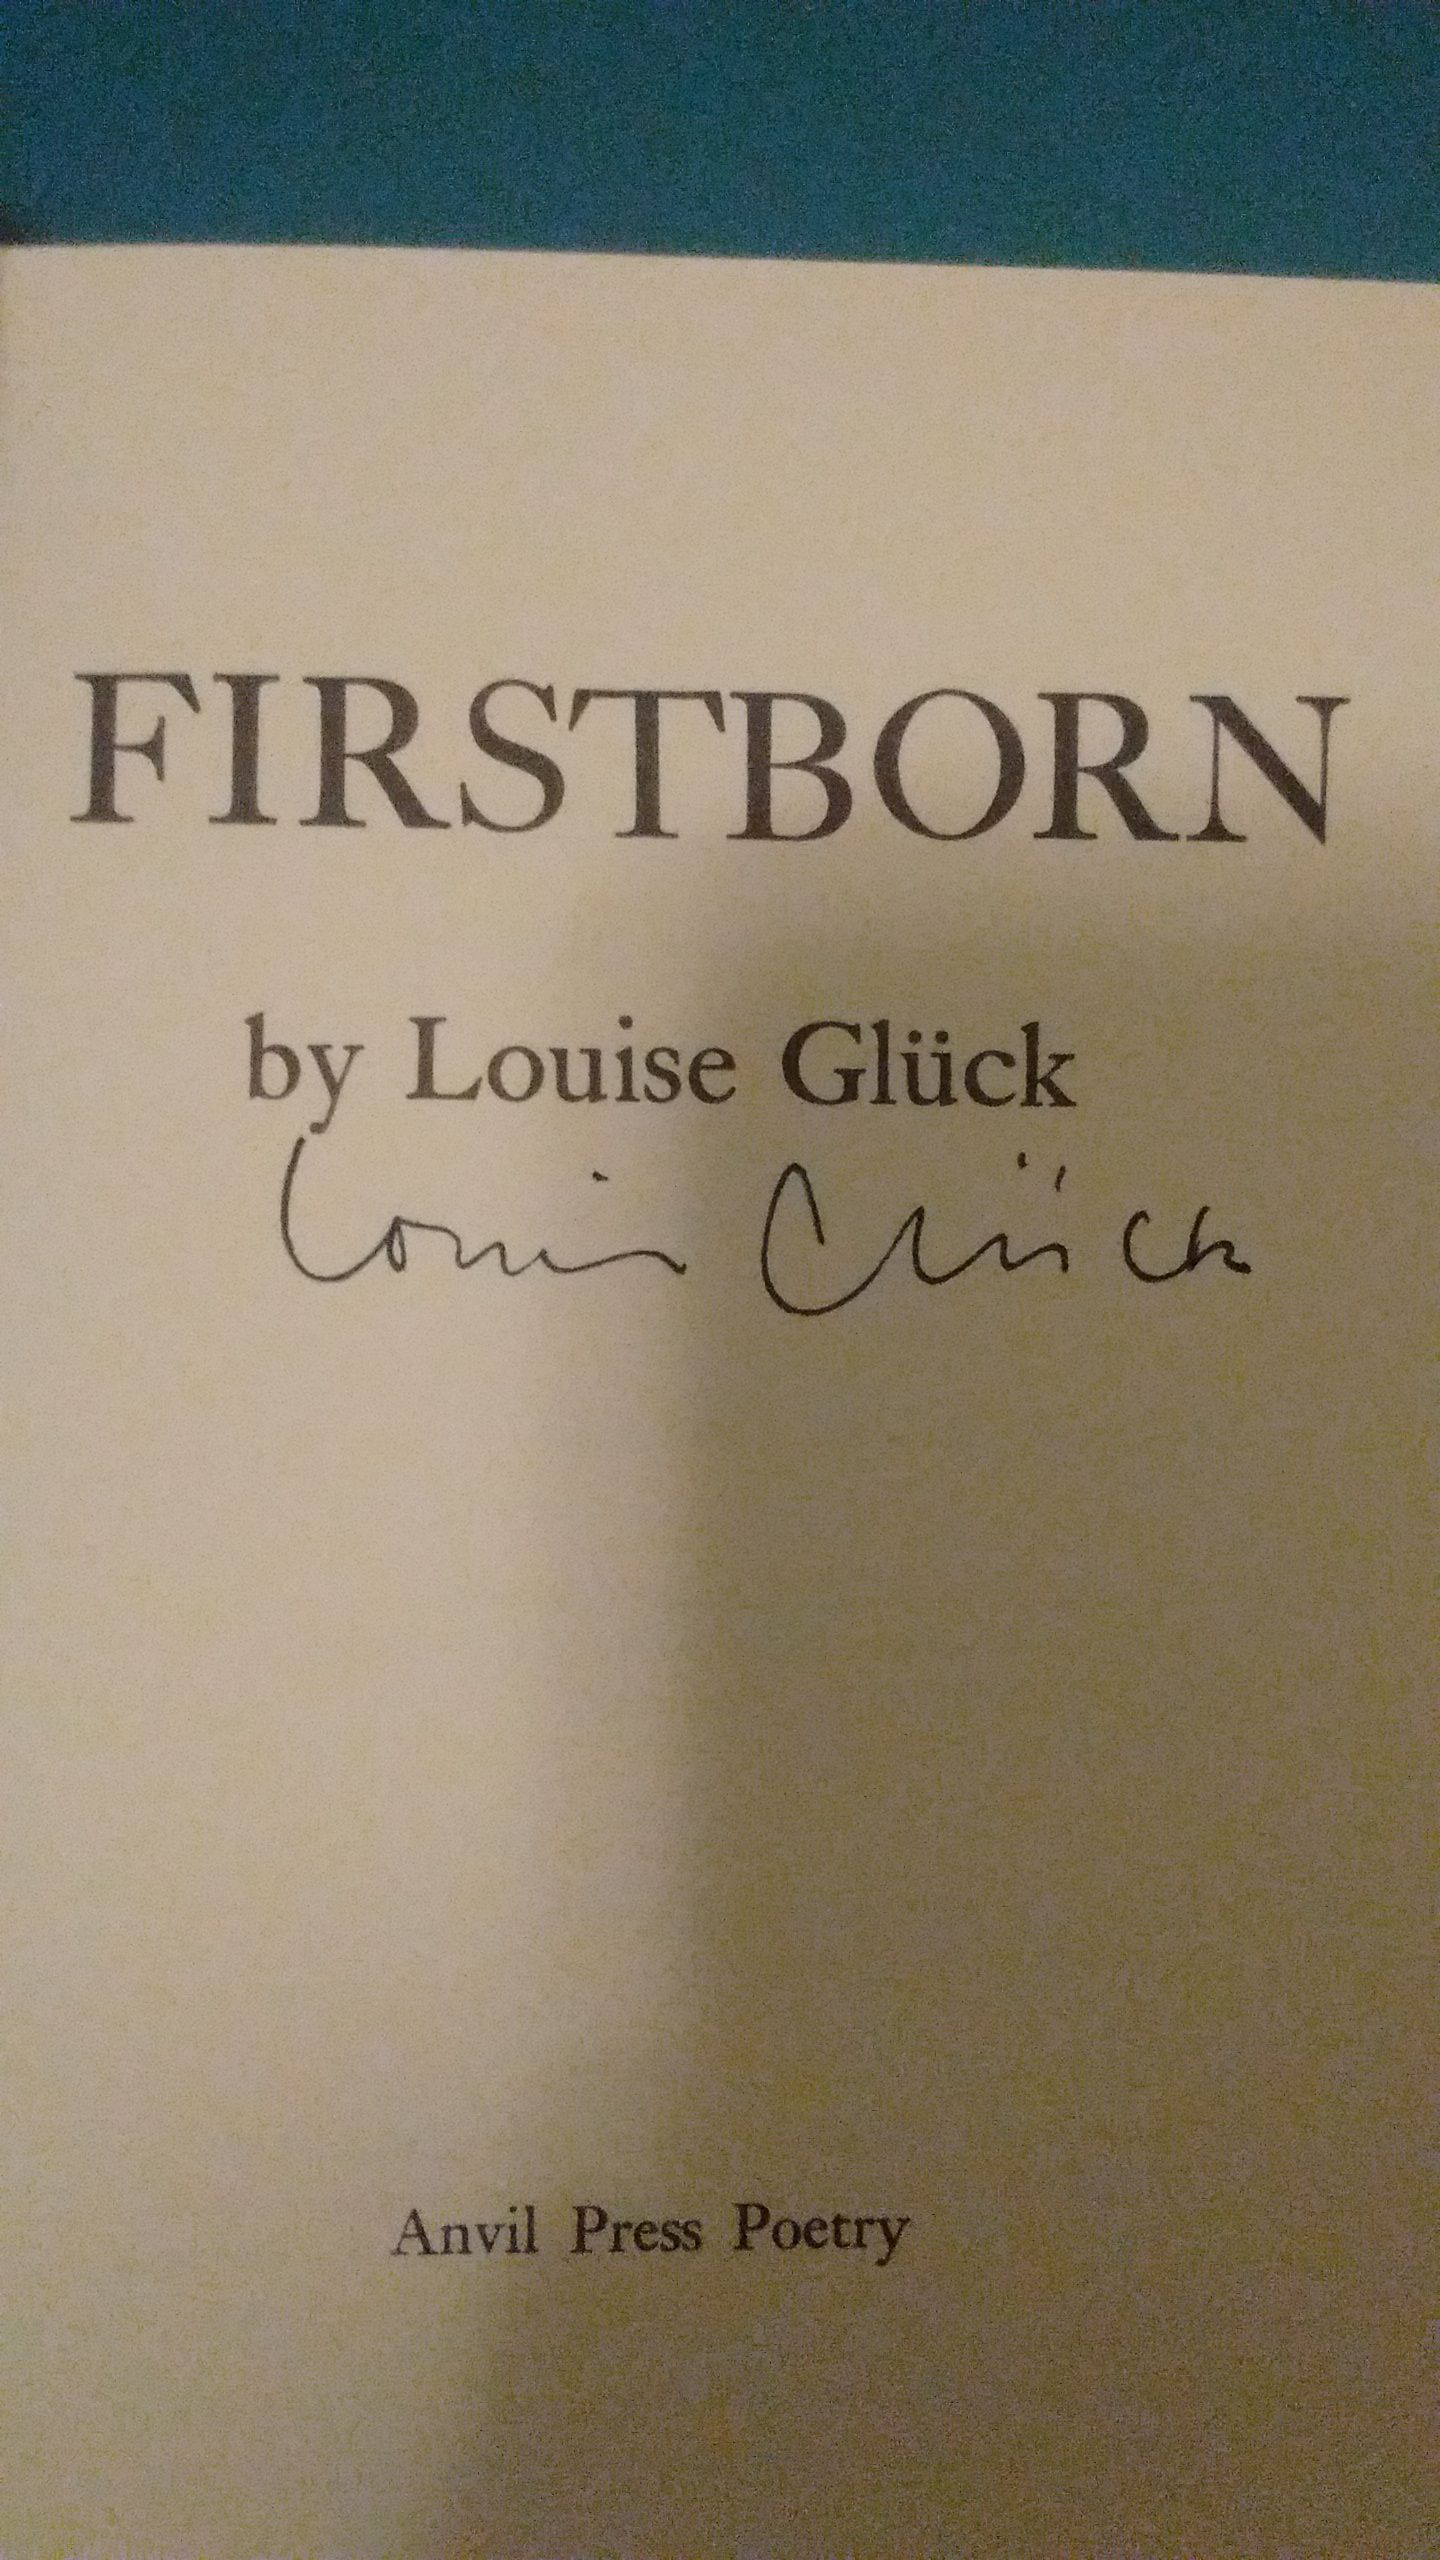 Firstborn By Louise Gluck Paperback Signed First Edition 1969 From William Ramsey Rare Books Manuscripts Sku 000434